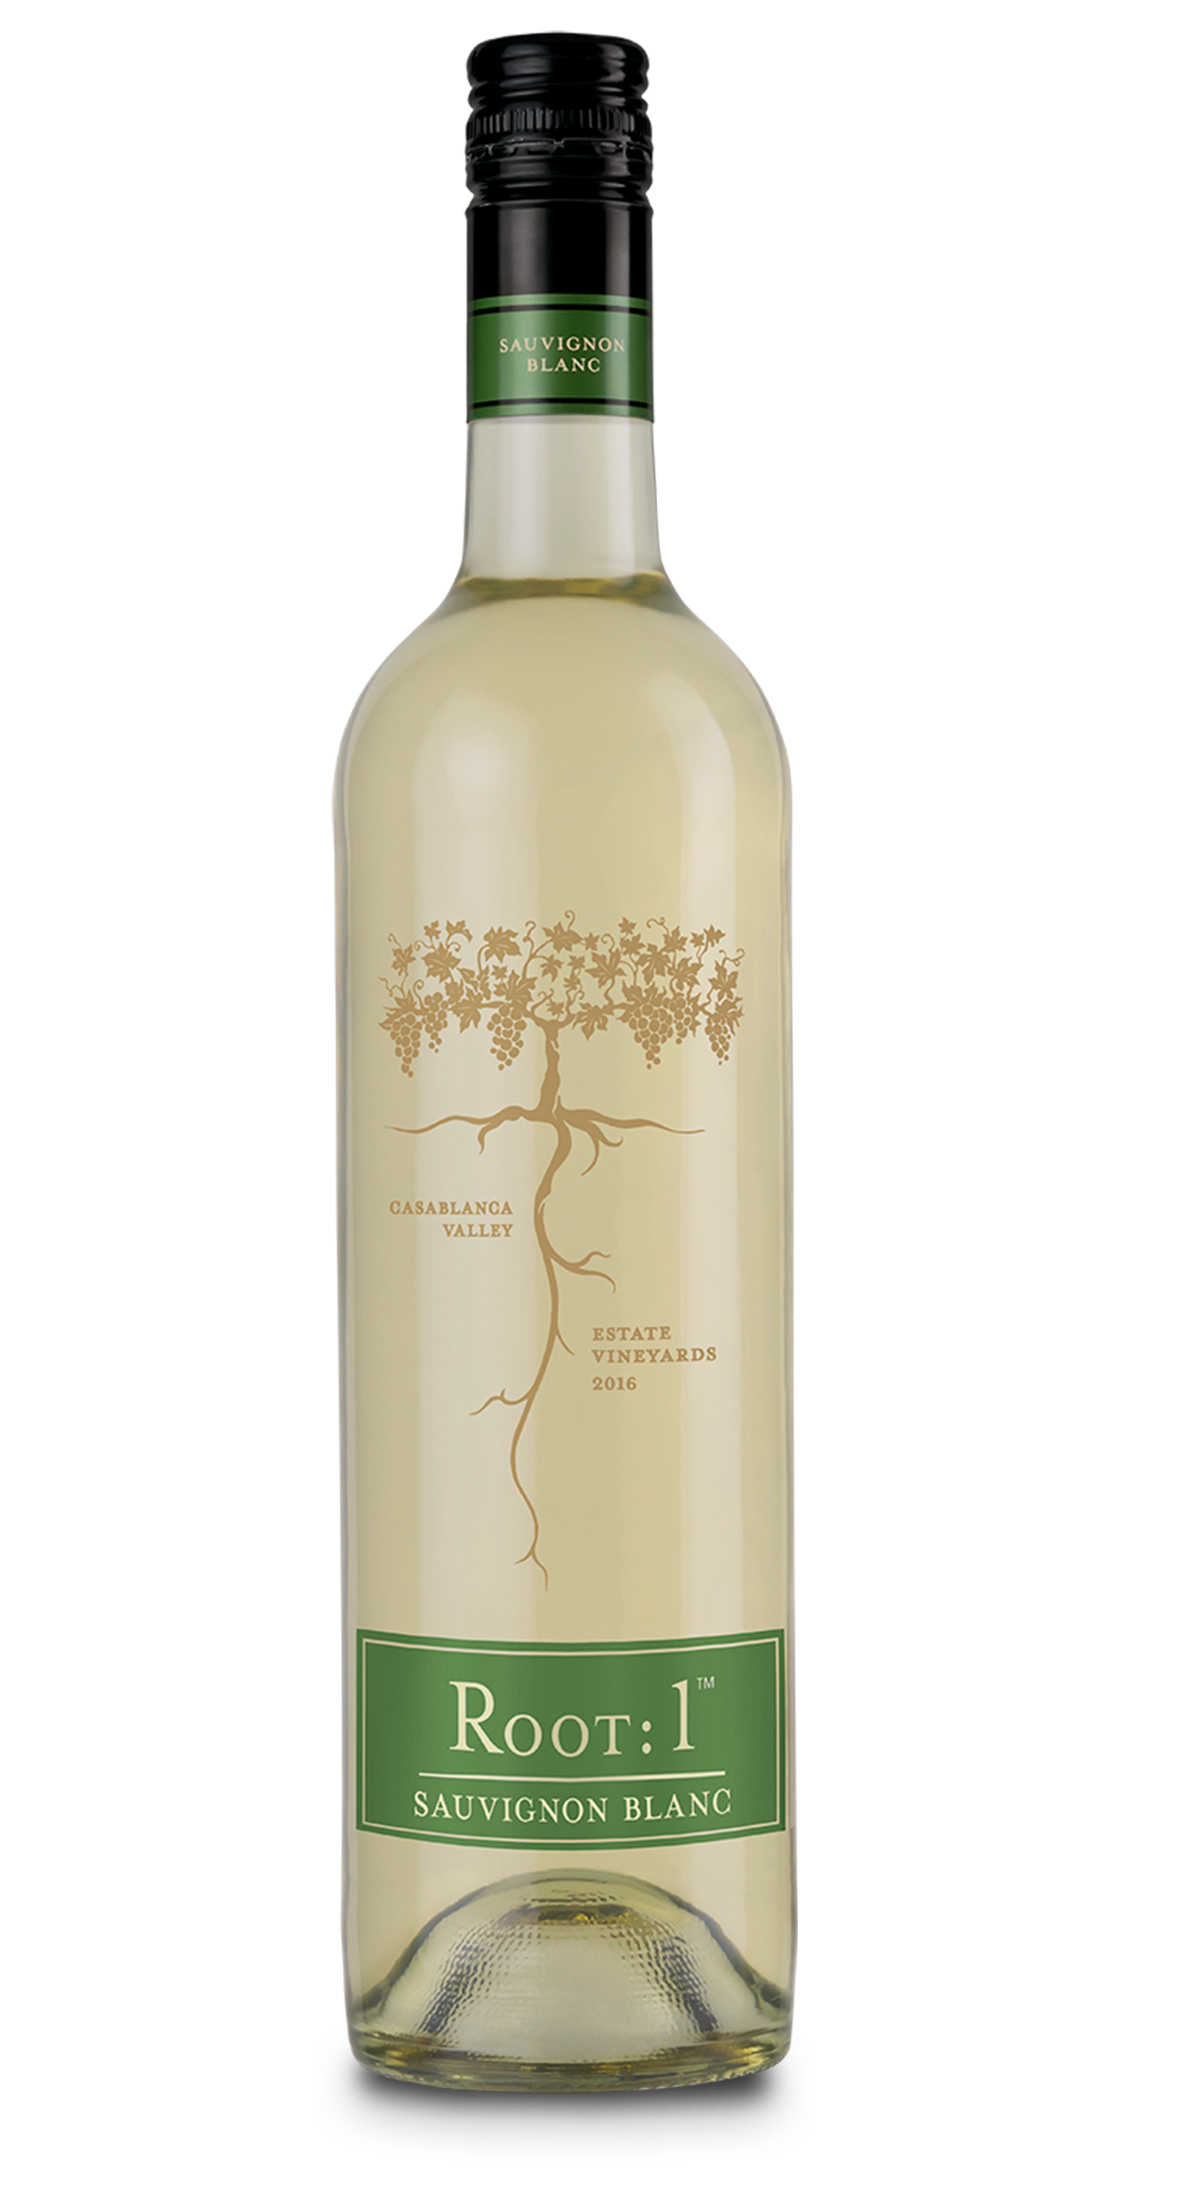 Root: 1 Sauvignon Blanc - Chilean wine